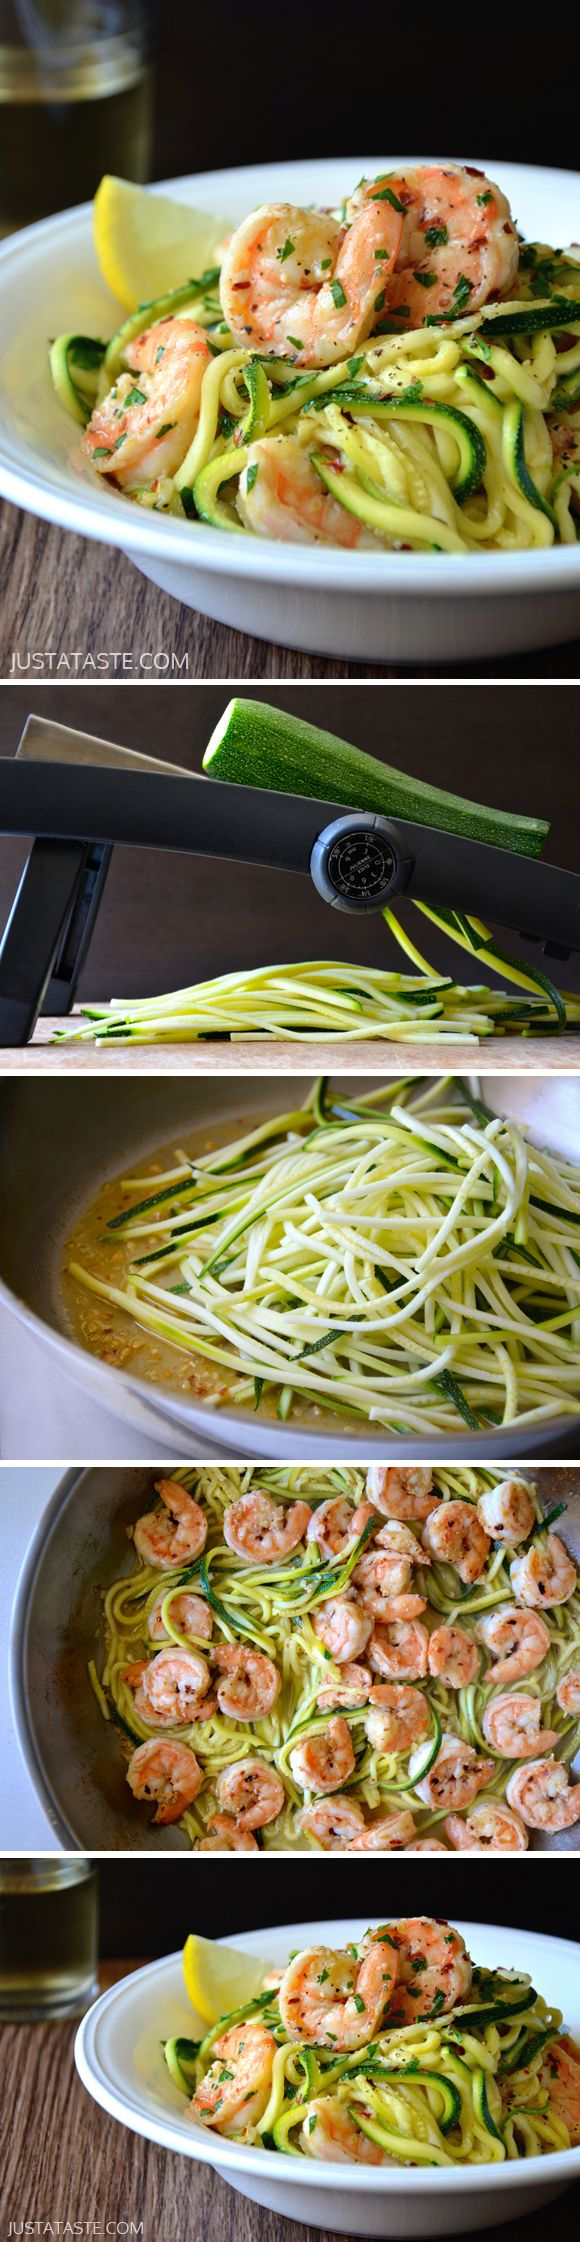 Scampi Skinny Shrimp sneakers with Zucchini images Noodles  and   Recipe Zucchini Zucchini latest Shrimp   Noodles jordan